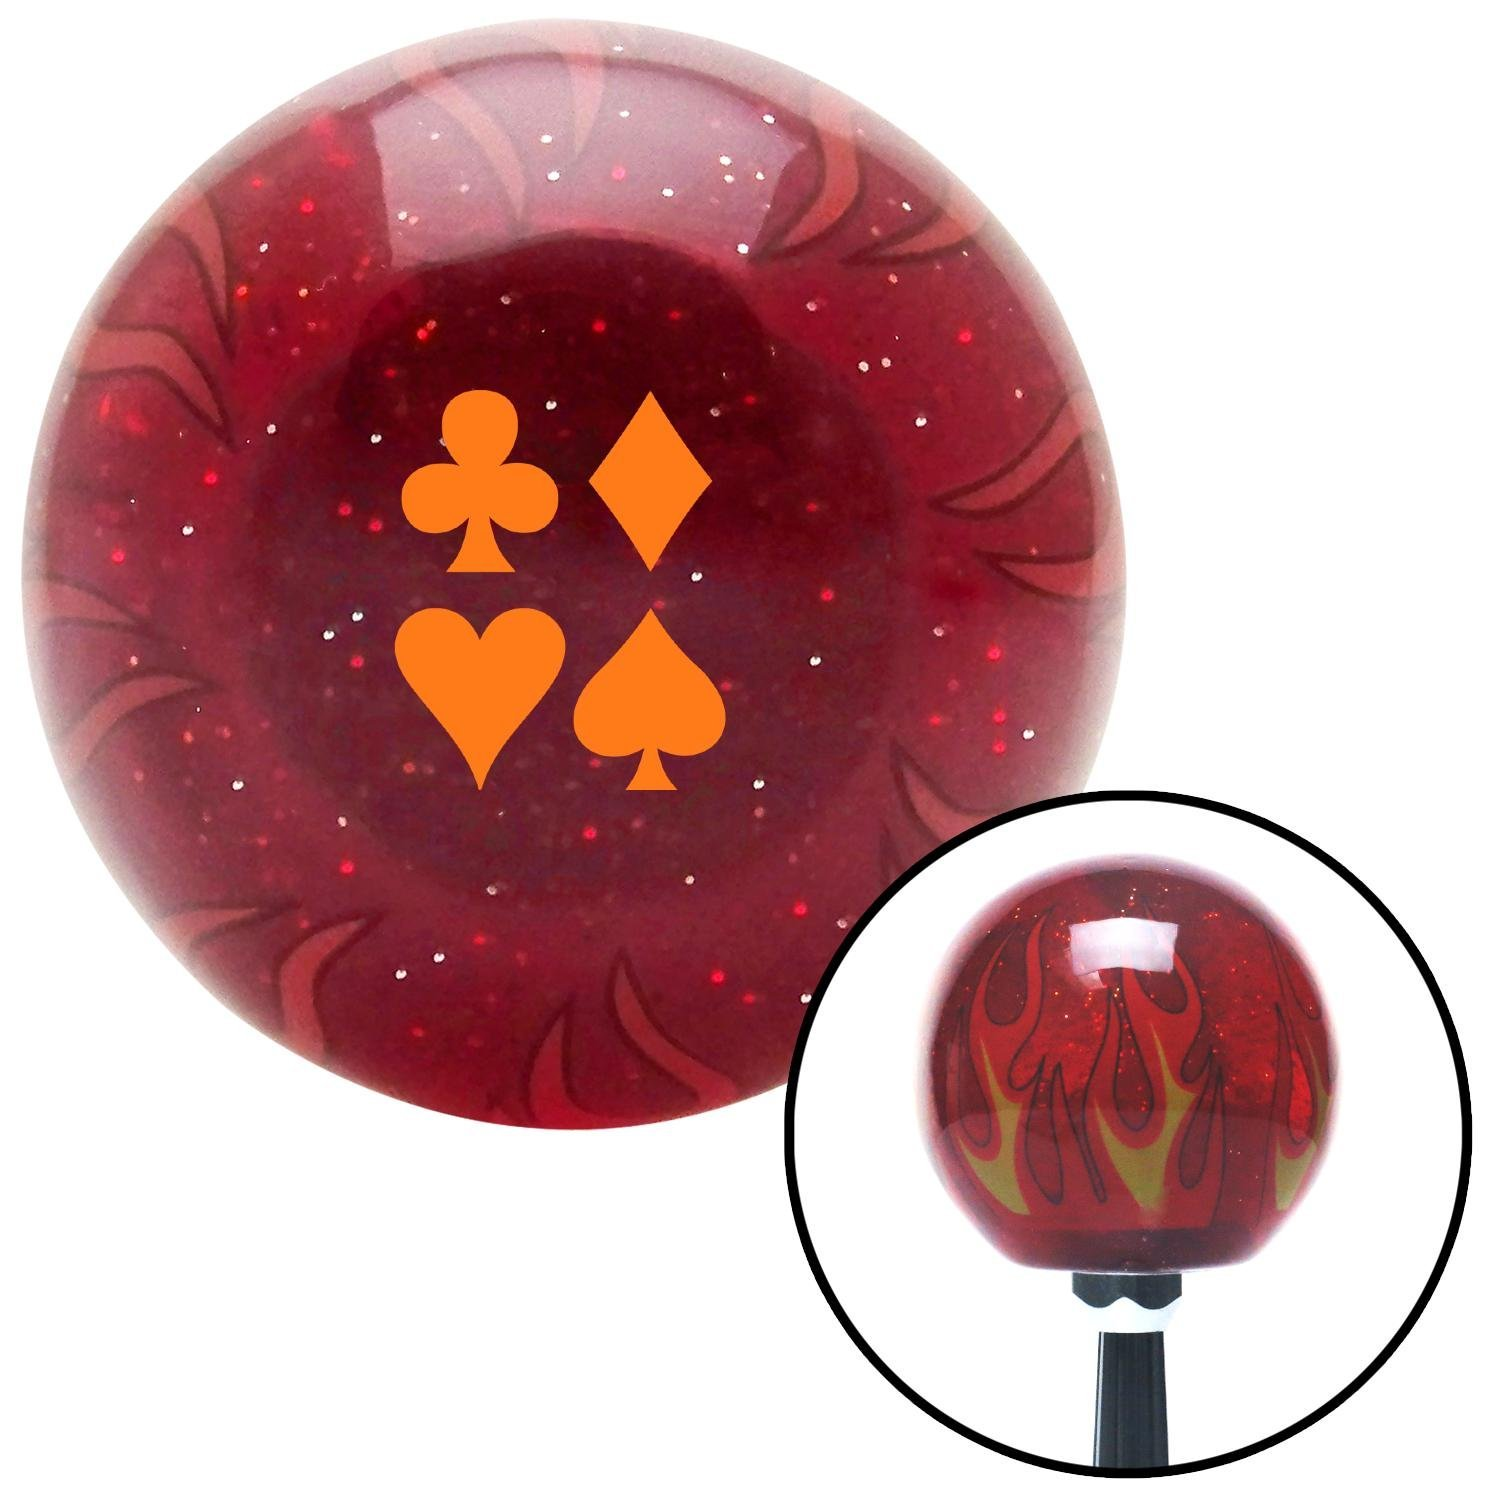 Orange Clubs Diamond Heart Spades American Shifter 236557 Red Flame Metal Flake Shift Knob with M16 x 1.5 Insert